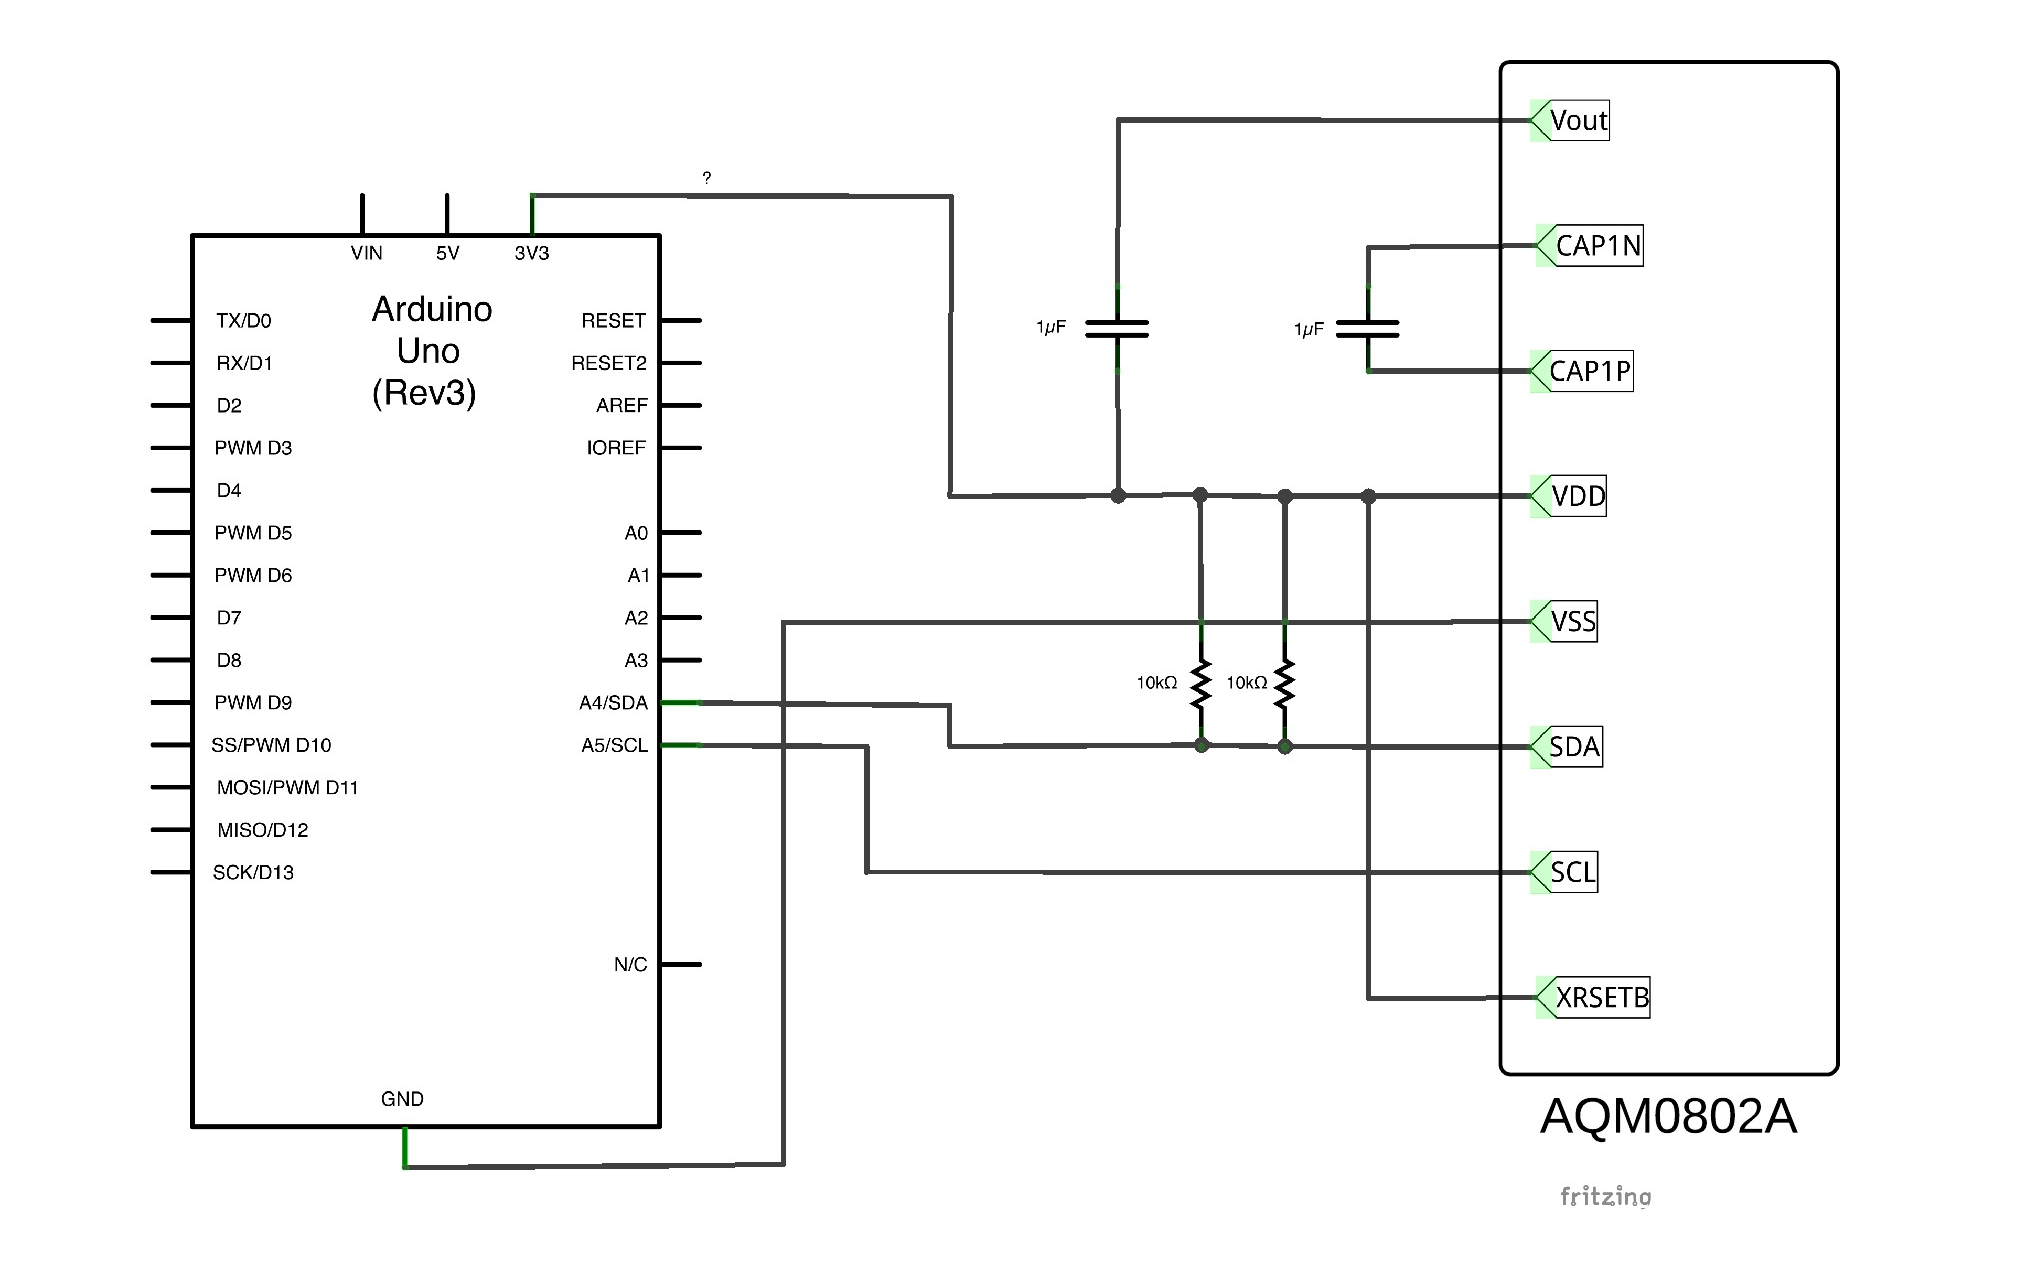 Connecting An I2c Lcd Display To Arduino 101 Monocilindro Blog Wiring Sitronix St7032